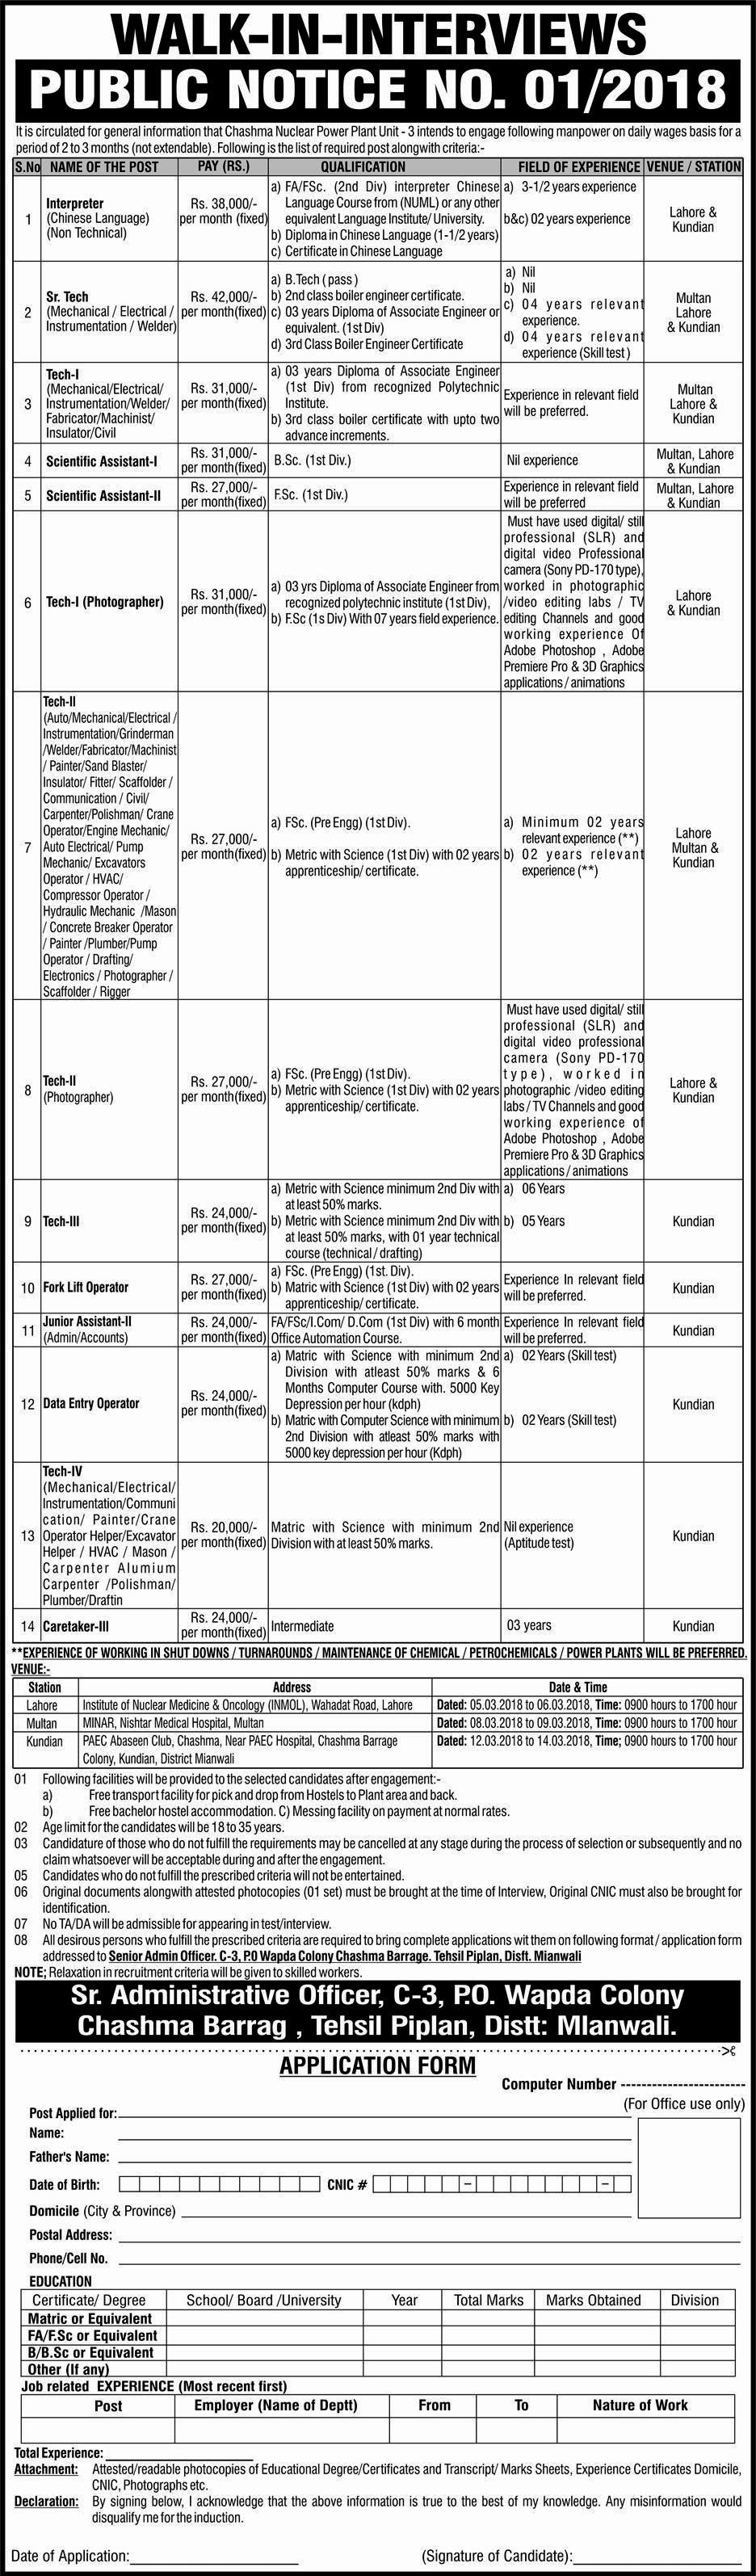 Atomic Energy Jobs Chashma Barrage Jobs For DAE, Bechlors, FSc and Matric